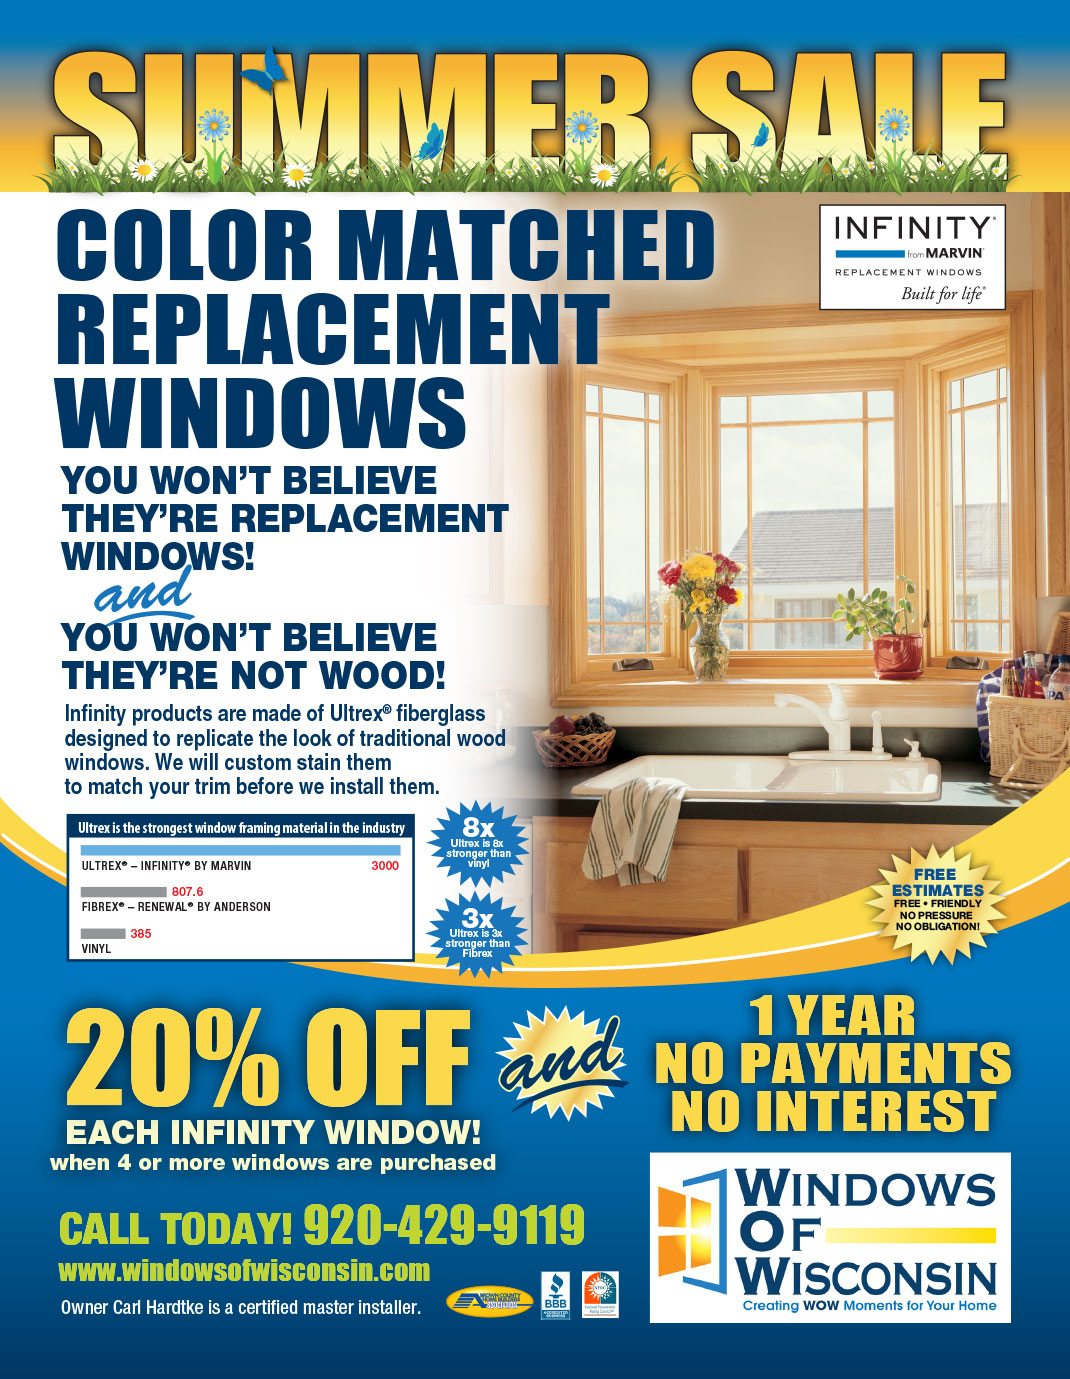 Summer Sale at Windows of Wisconsin Replacement Windows from Infinity by Marvin in Green Bay and Appleton